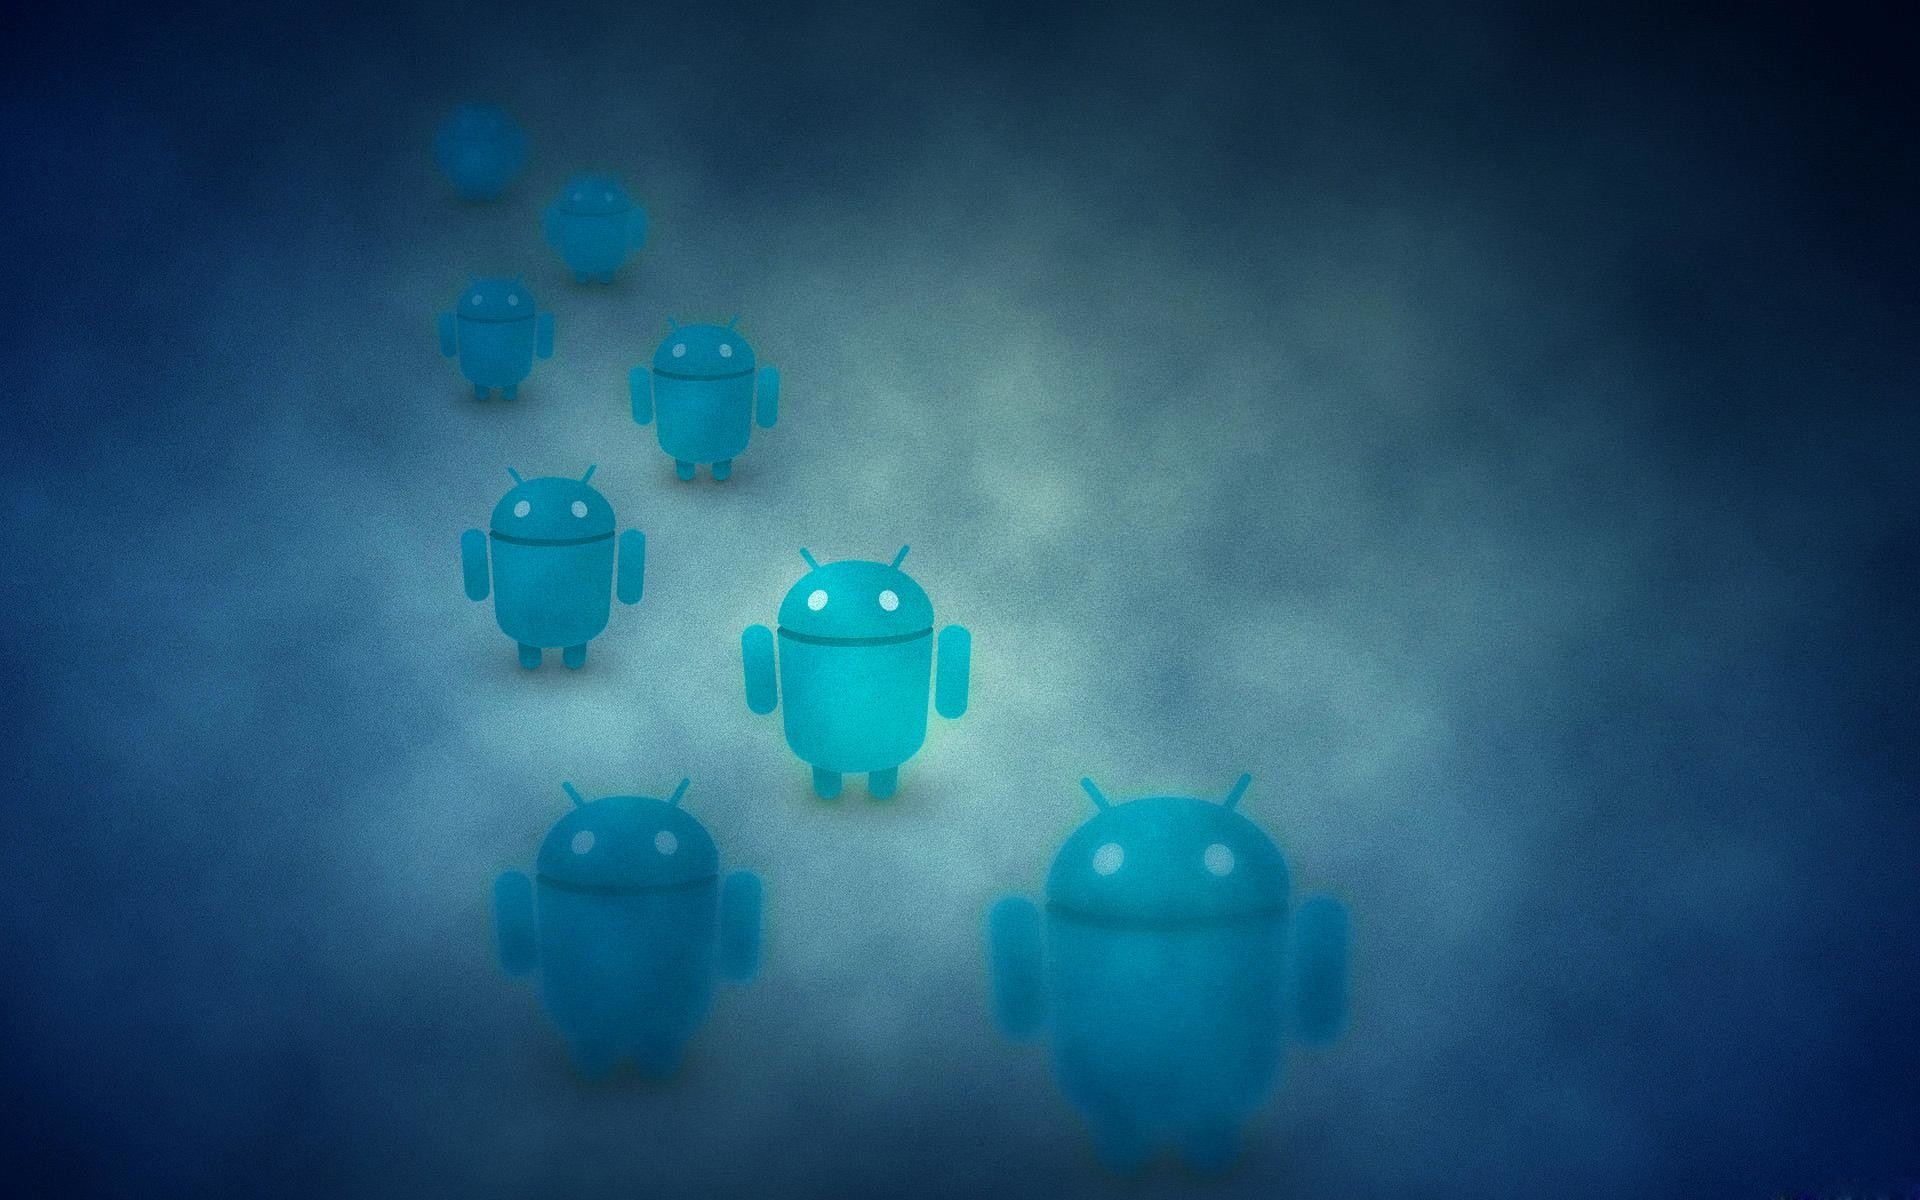 Android-Tablet-Wallpaper-Free